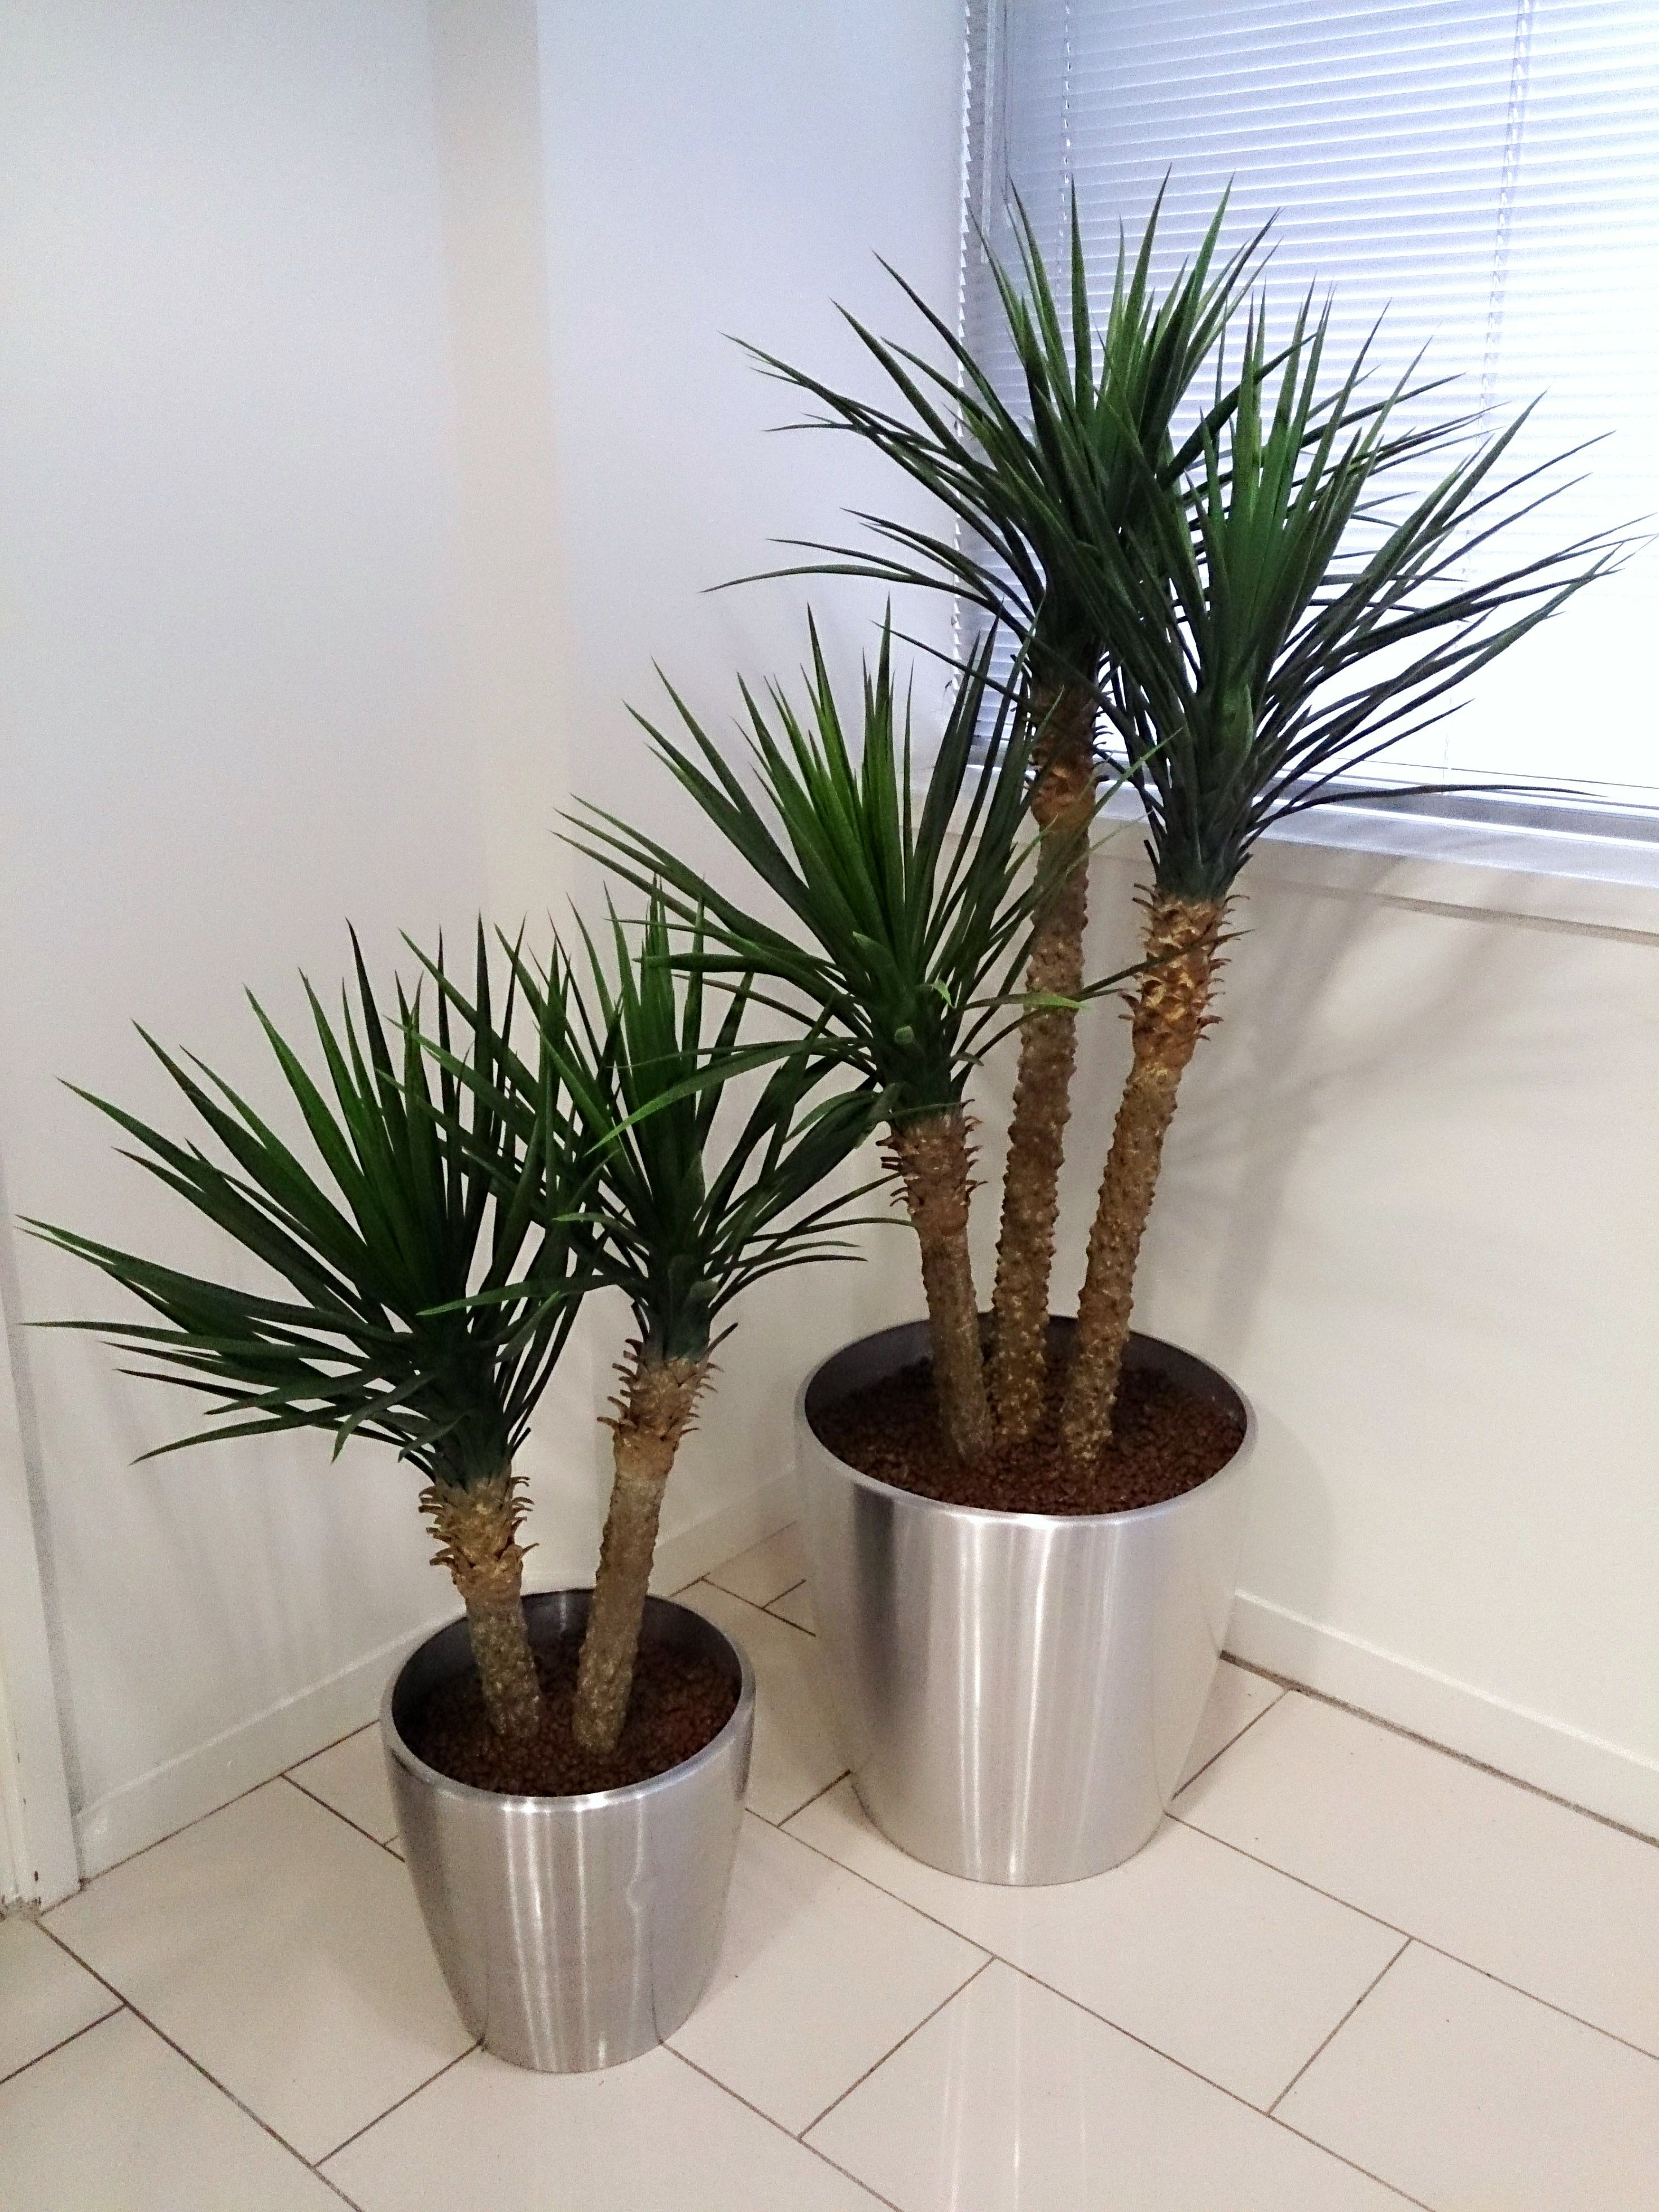 Artificial Yucca Rostrata Plants In Aluminium Containers, These Replaced Live